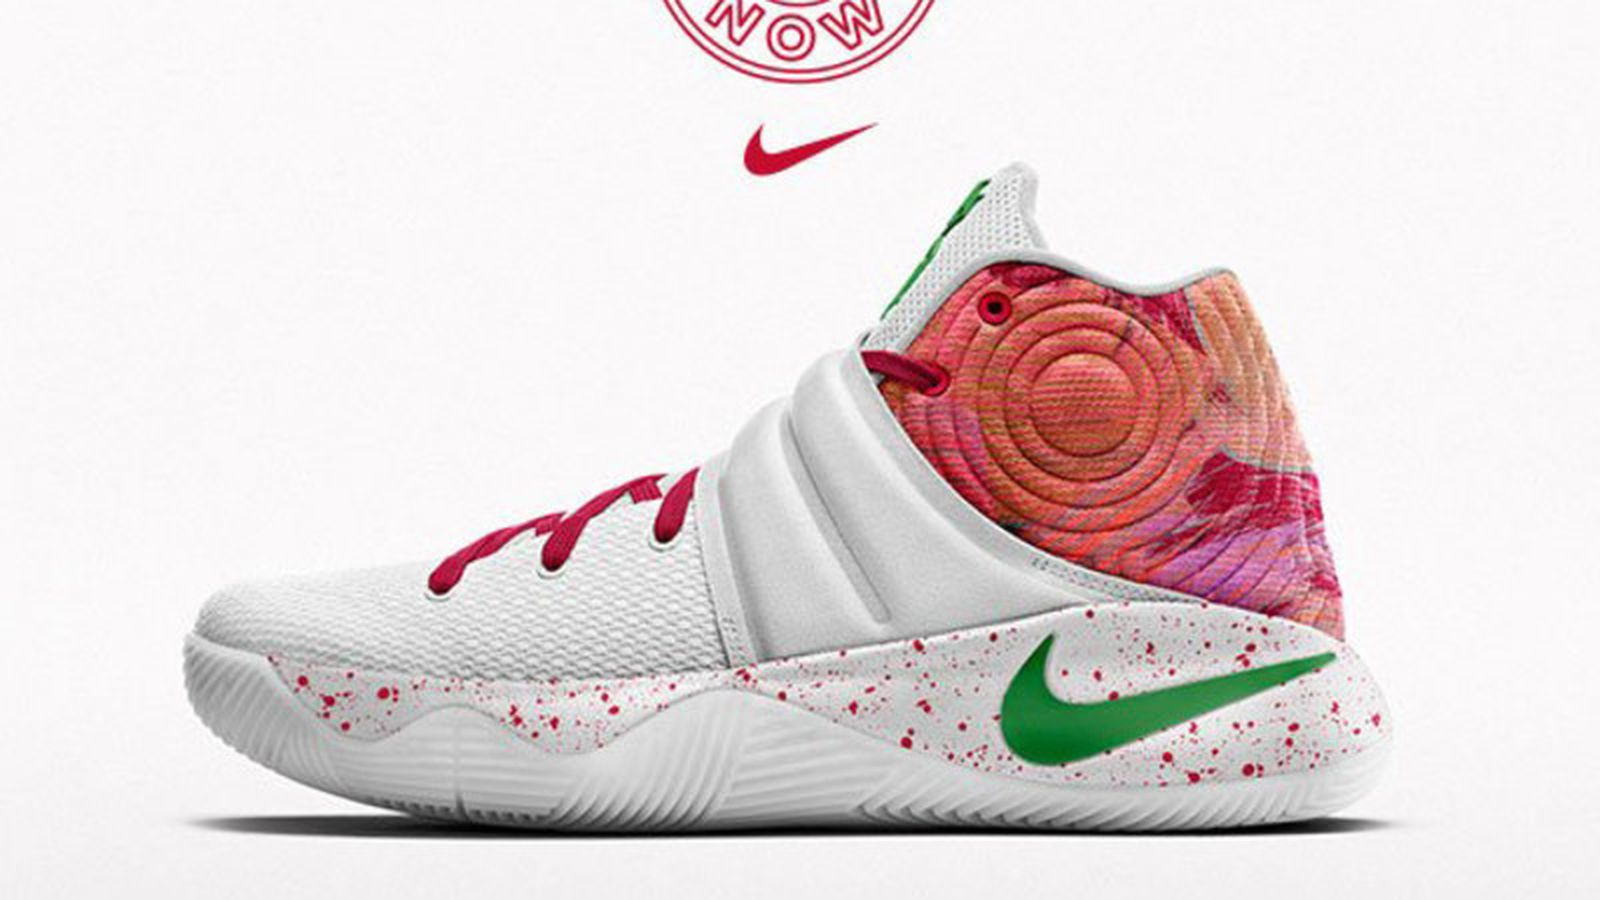 the latest fb645 d07ea Nike, Krispy Kreme teaming up for Kyrie 2 colorway - Fear The Sword